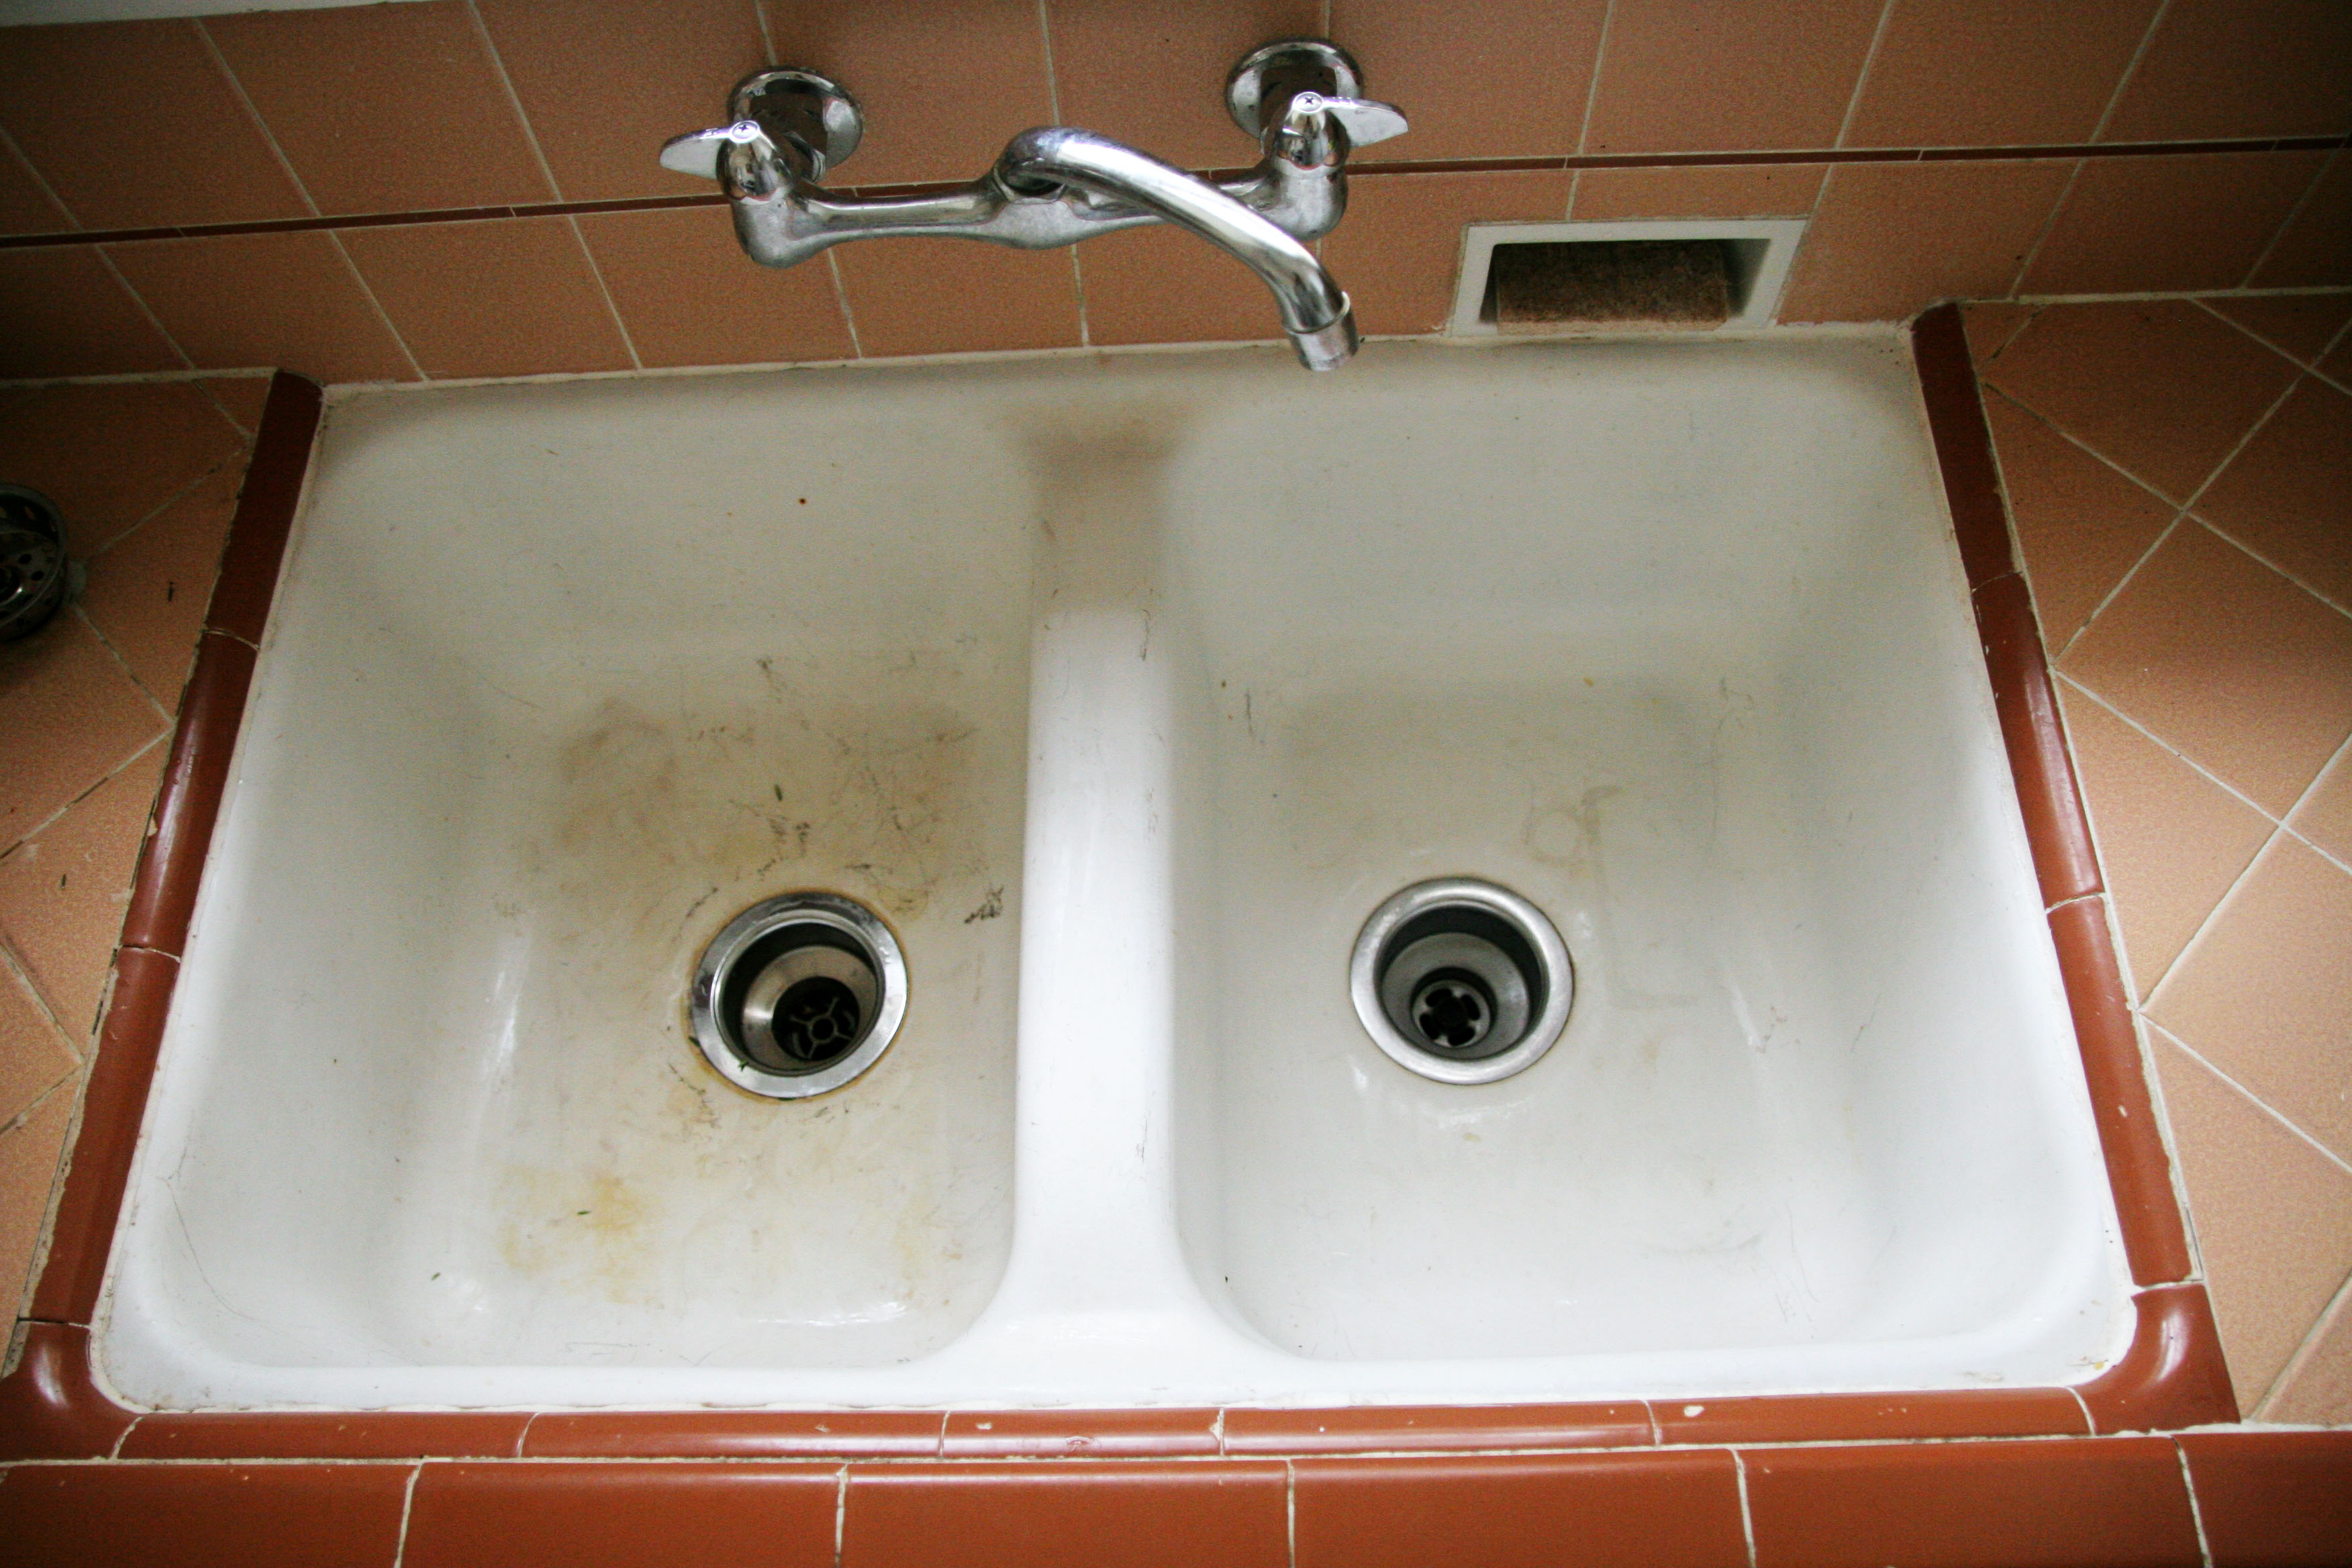 Steps To Clean An Old Porcelain Sink